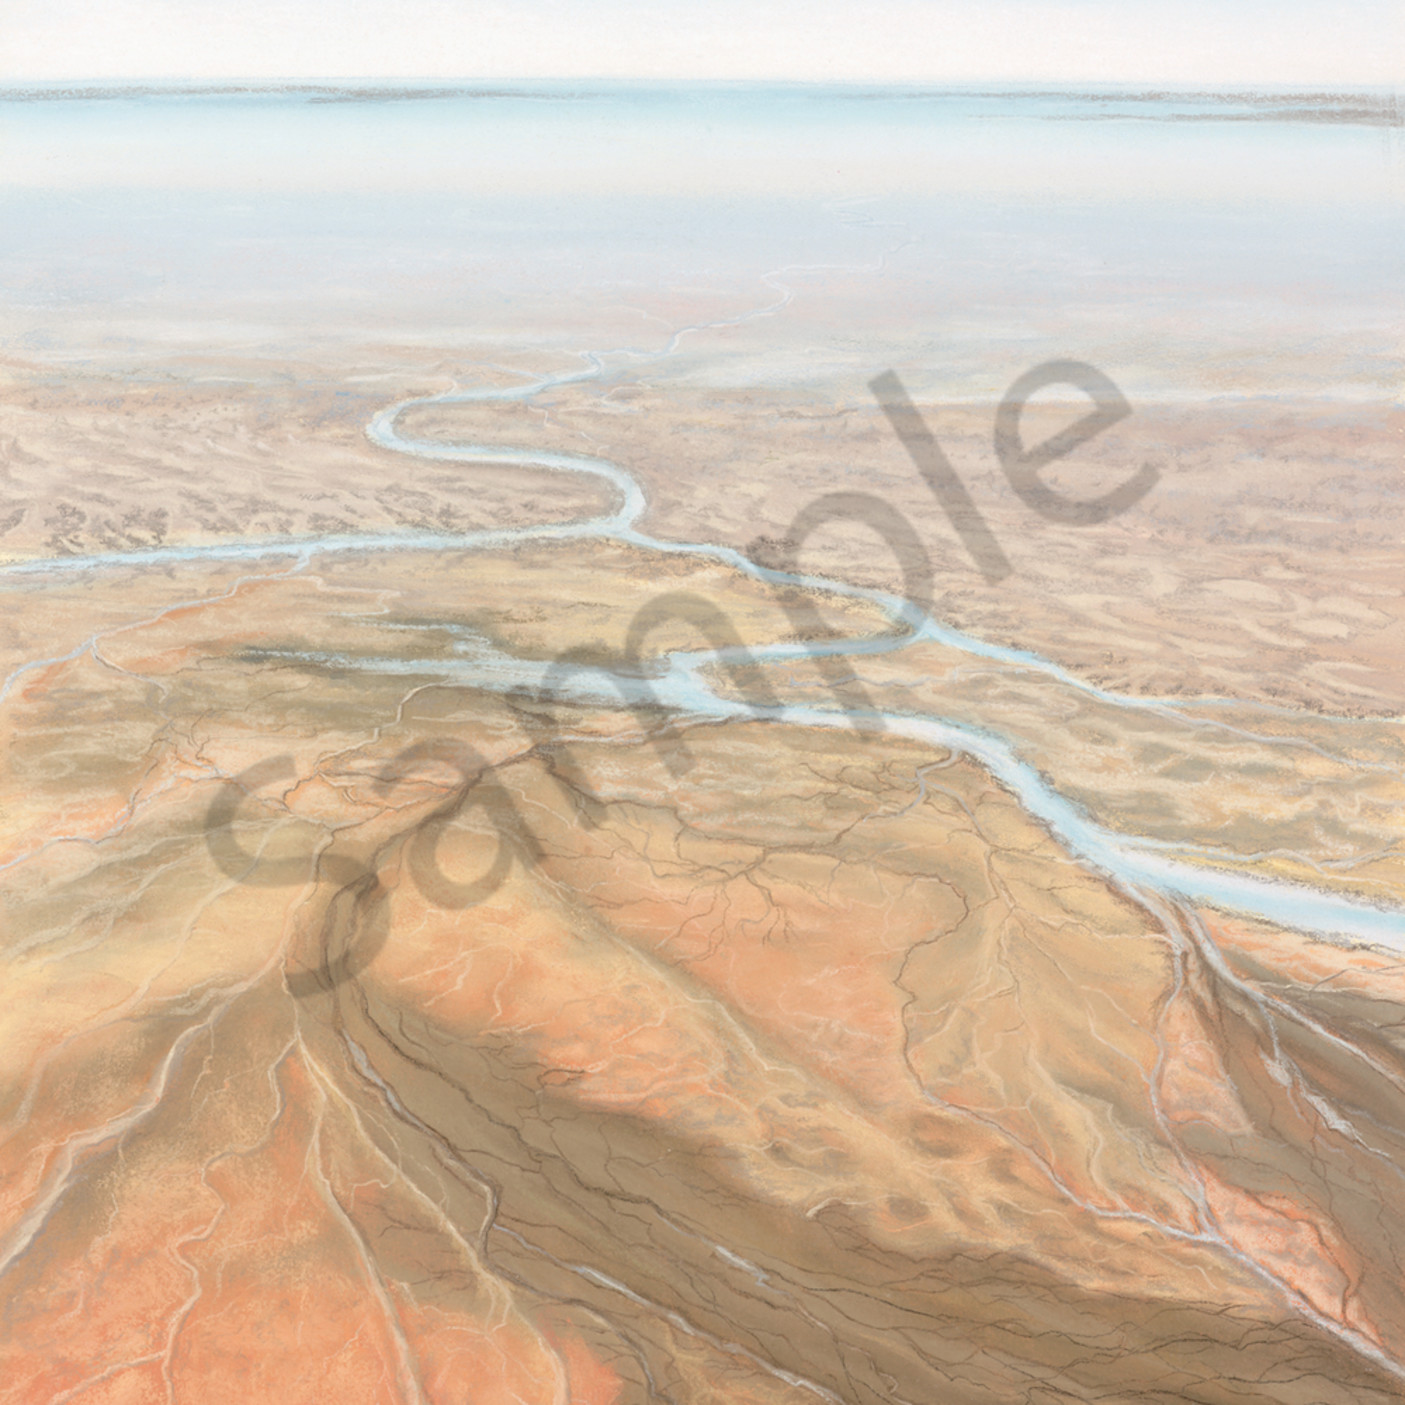 Jgre 050 approaching lake eyre 47x33cm original e4syj4